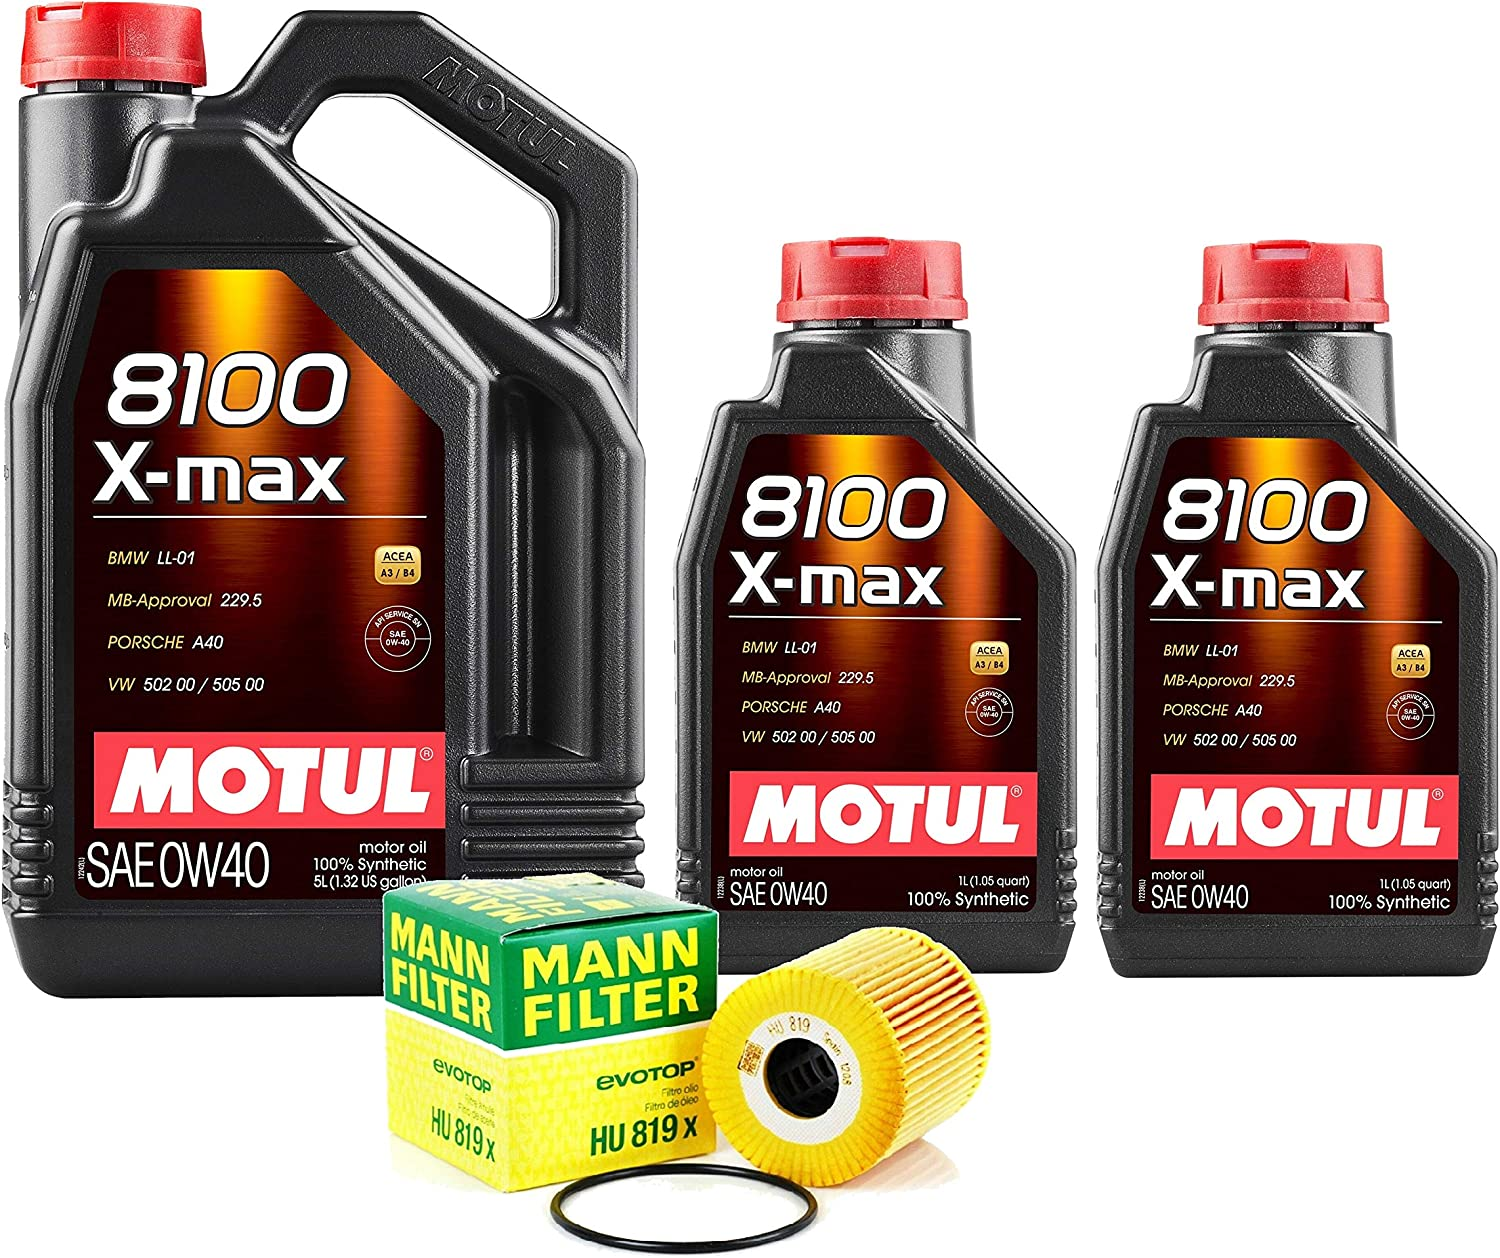 Newparts 7L 8100 X-MAX 0W40 Filter SEAL limited product Engine Motor Oil Change S Max 57% OFF Kit